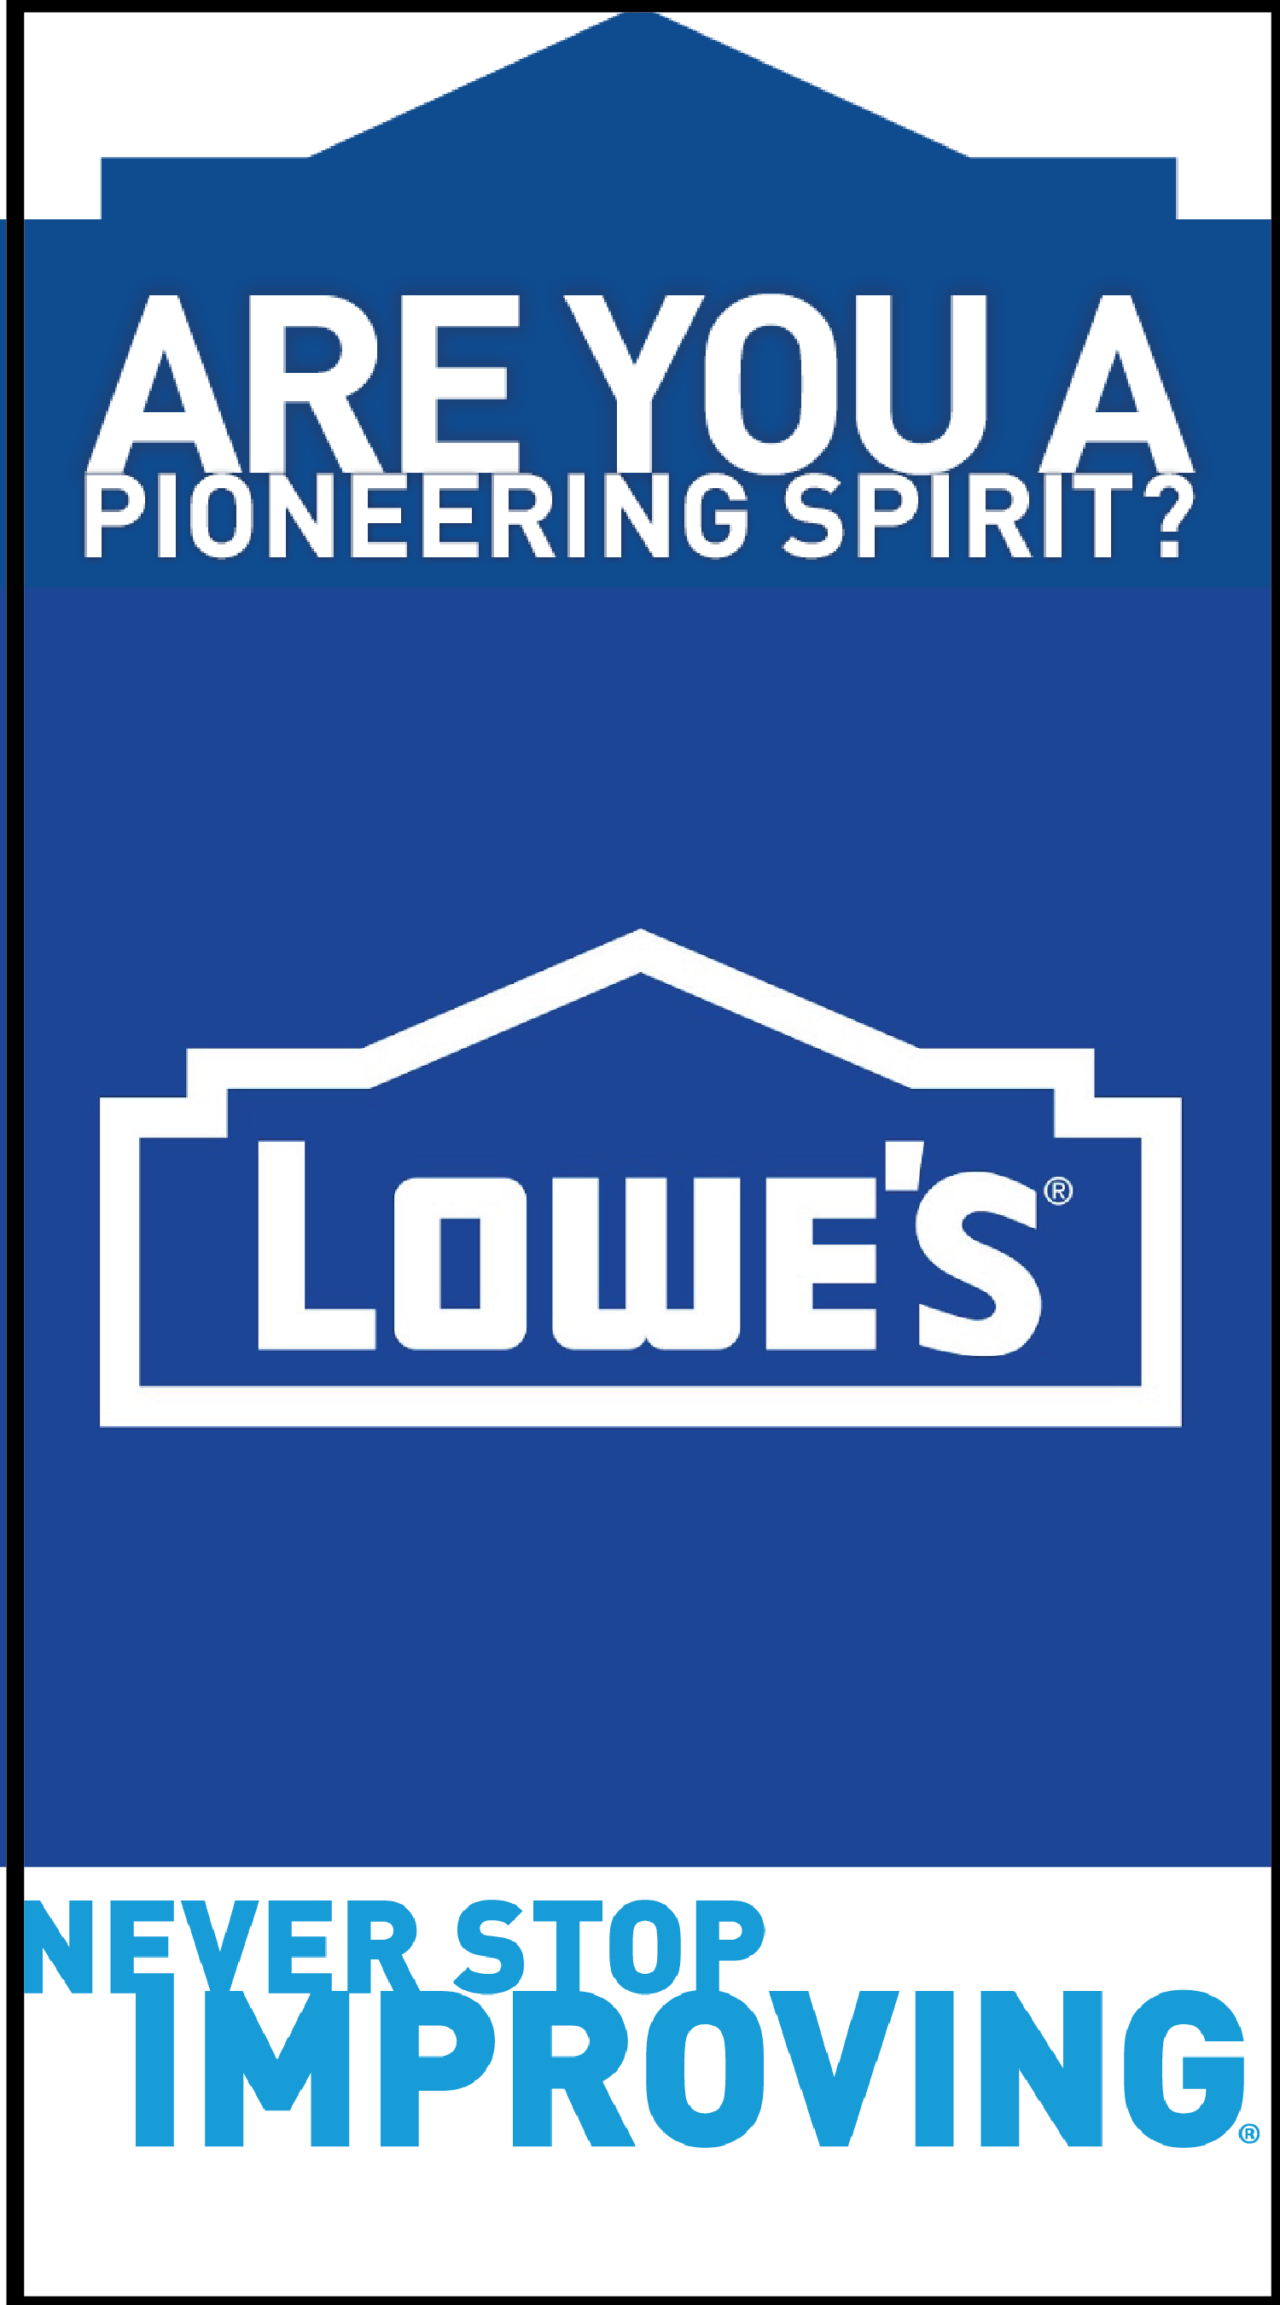 lowes-08